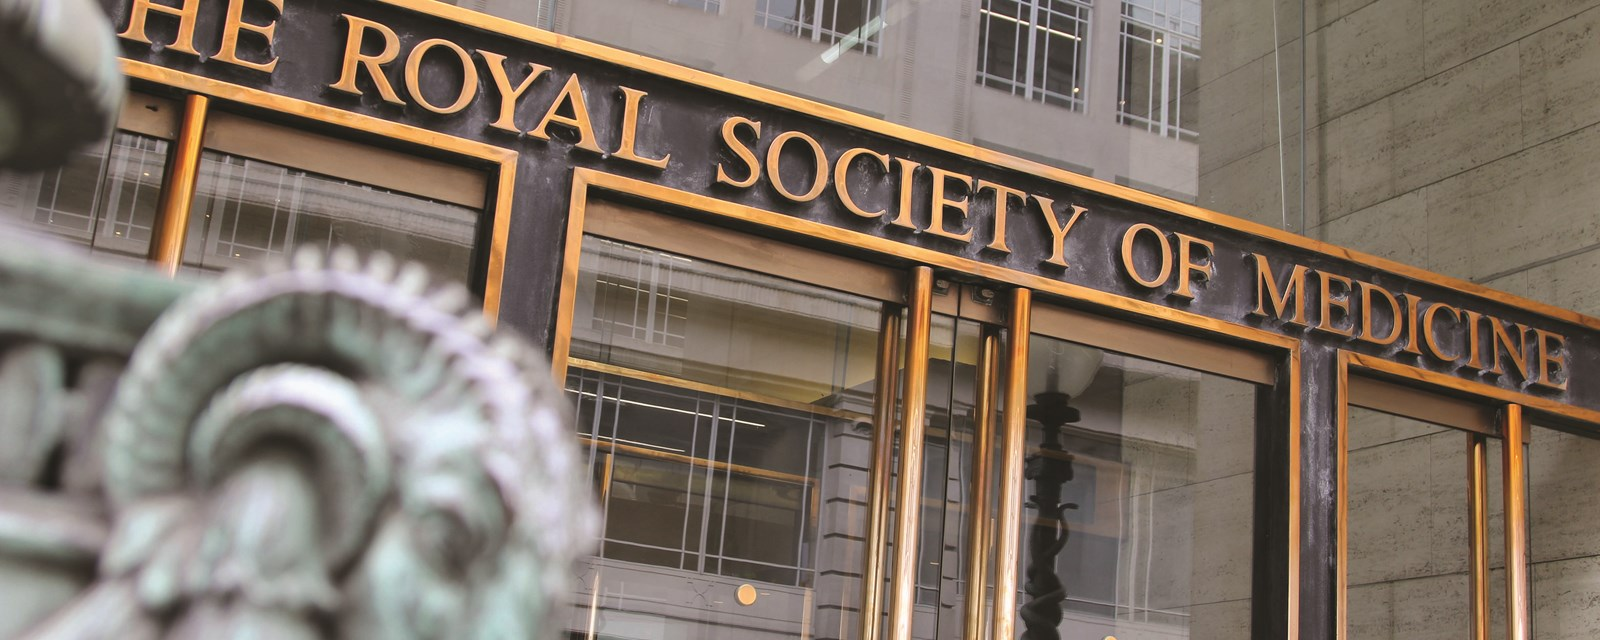 About Us | The Royal Society of Medicine